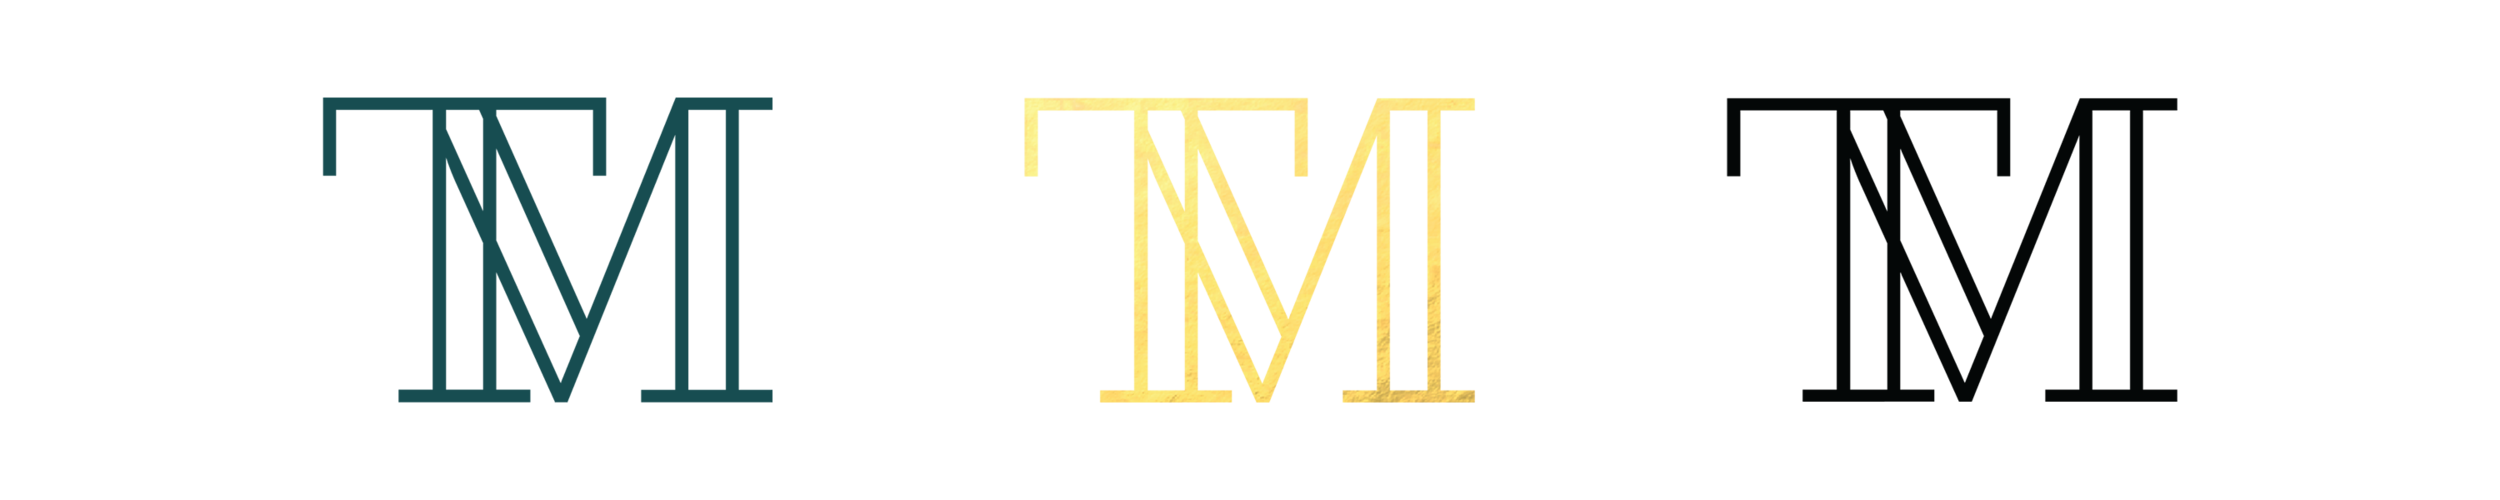 T&M_Logo_Version.png